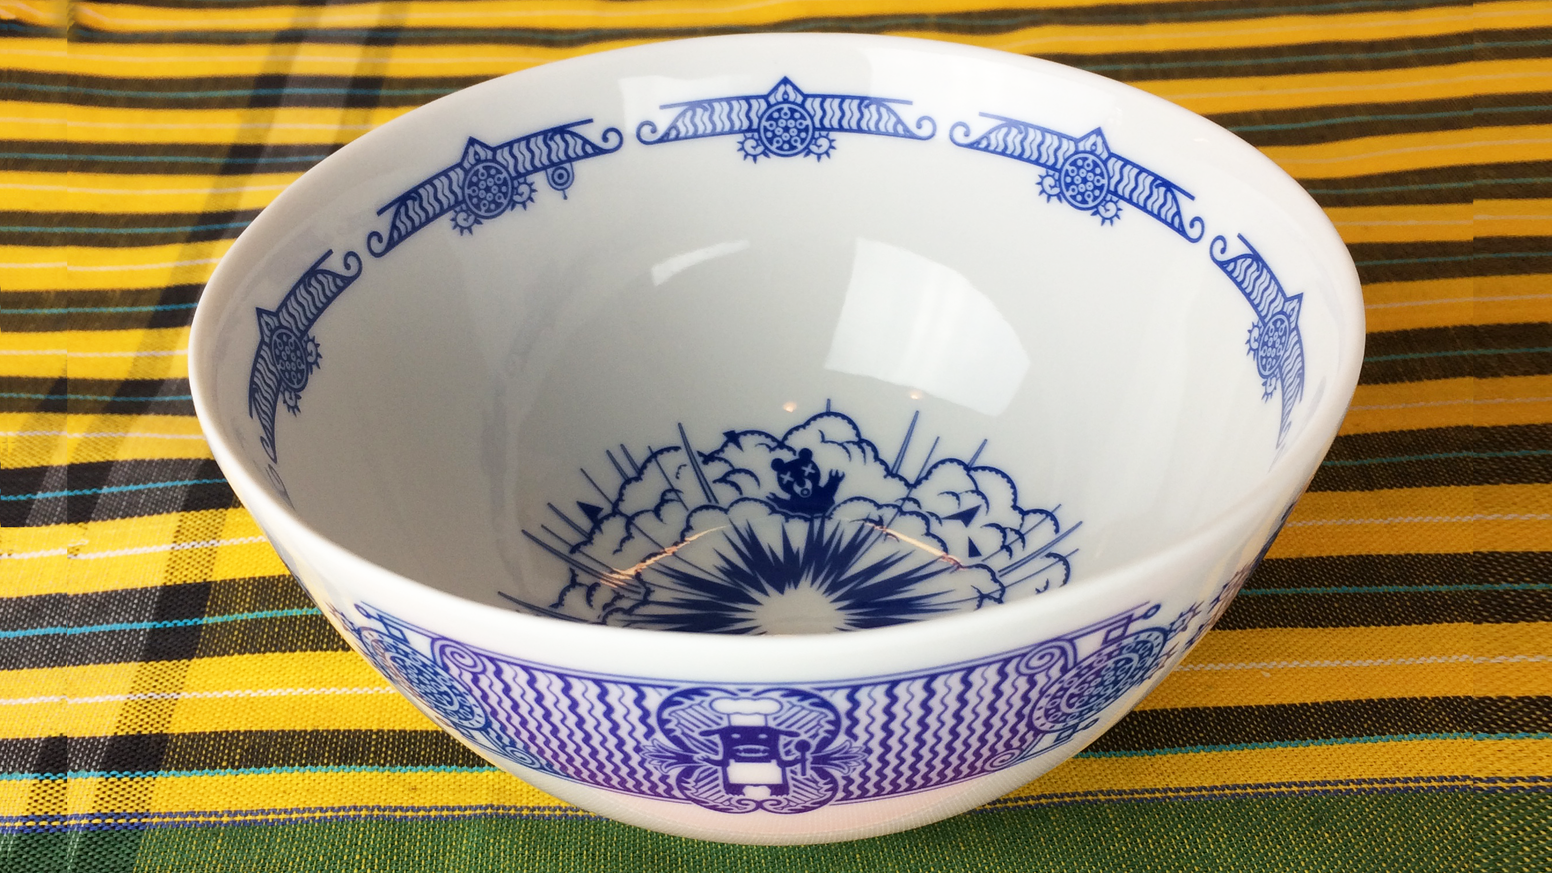 These deep bowls extend the Calamityware porcelain collection and graciously accommodate the wide range of foods that omnivores love.